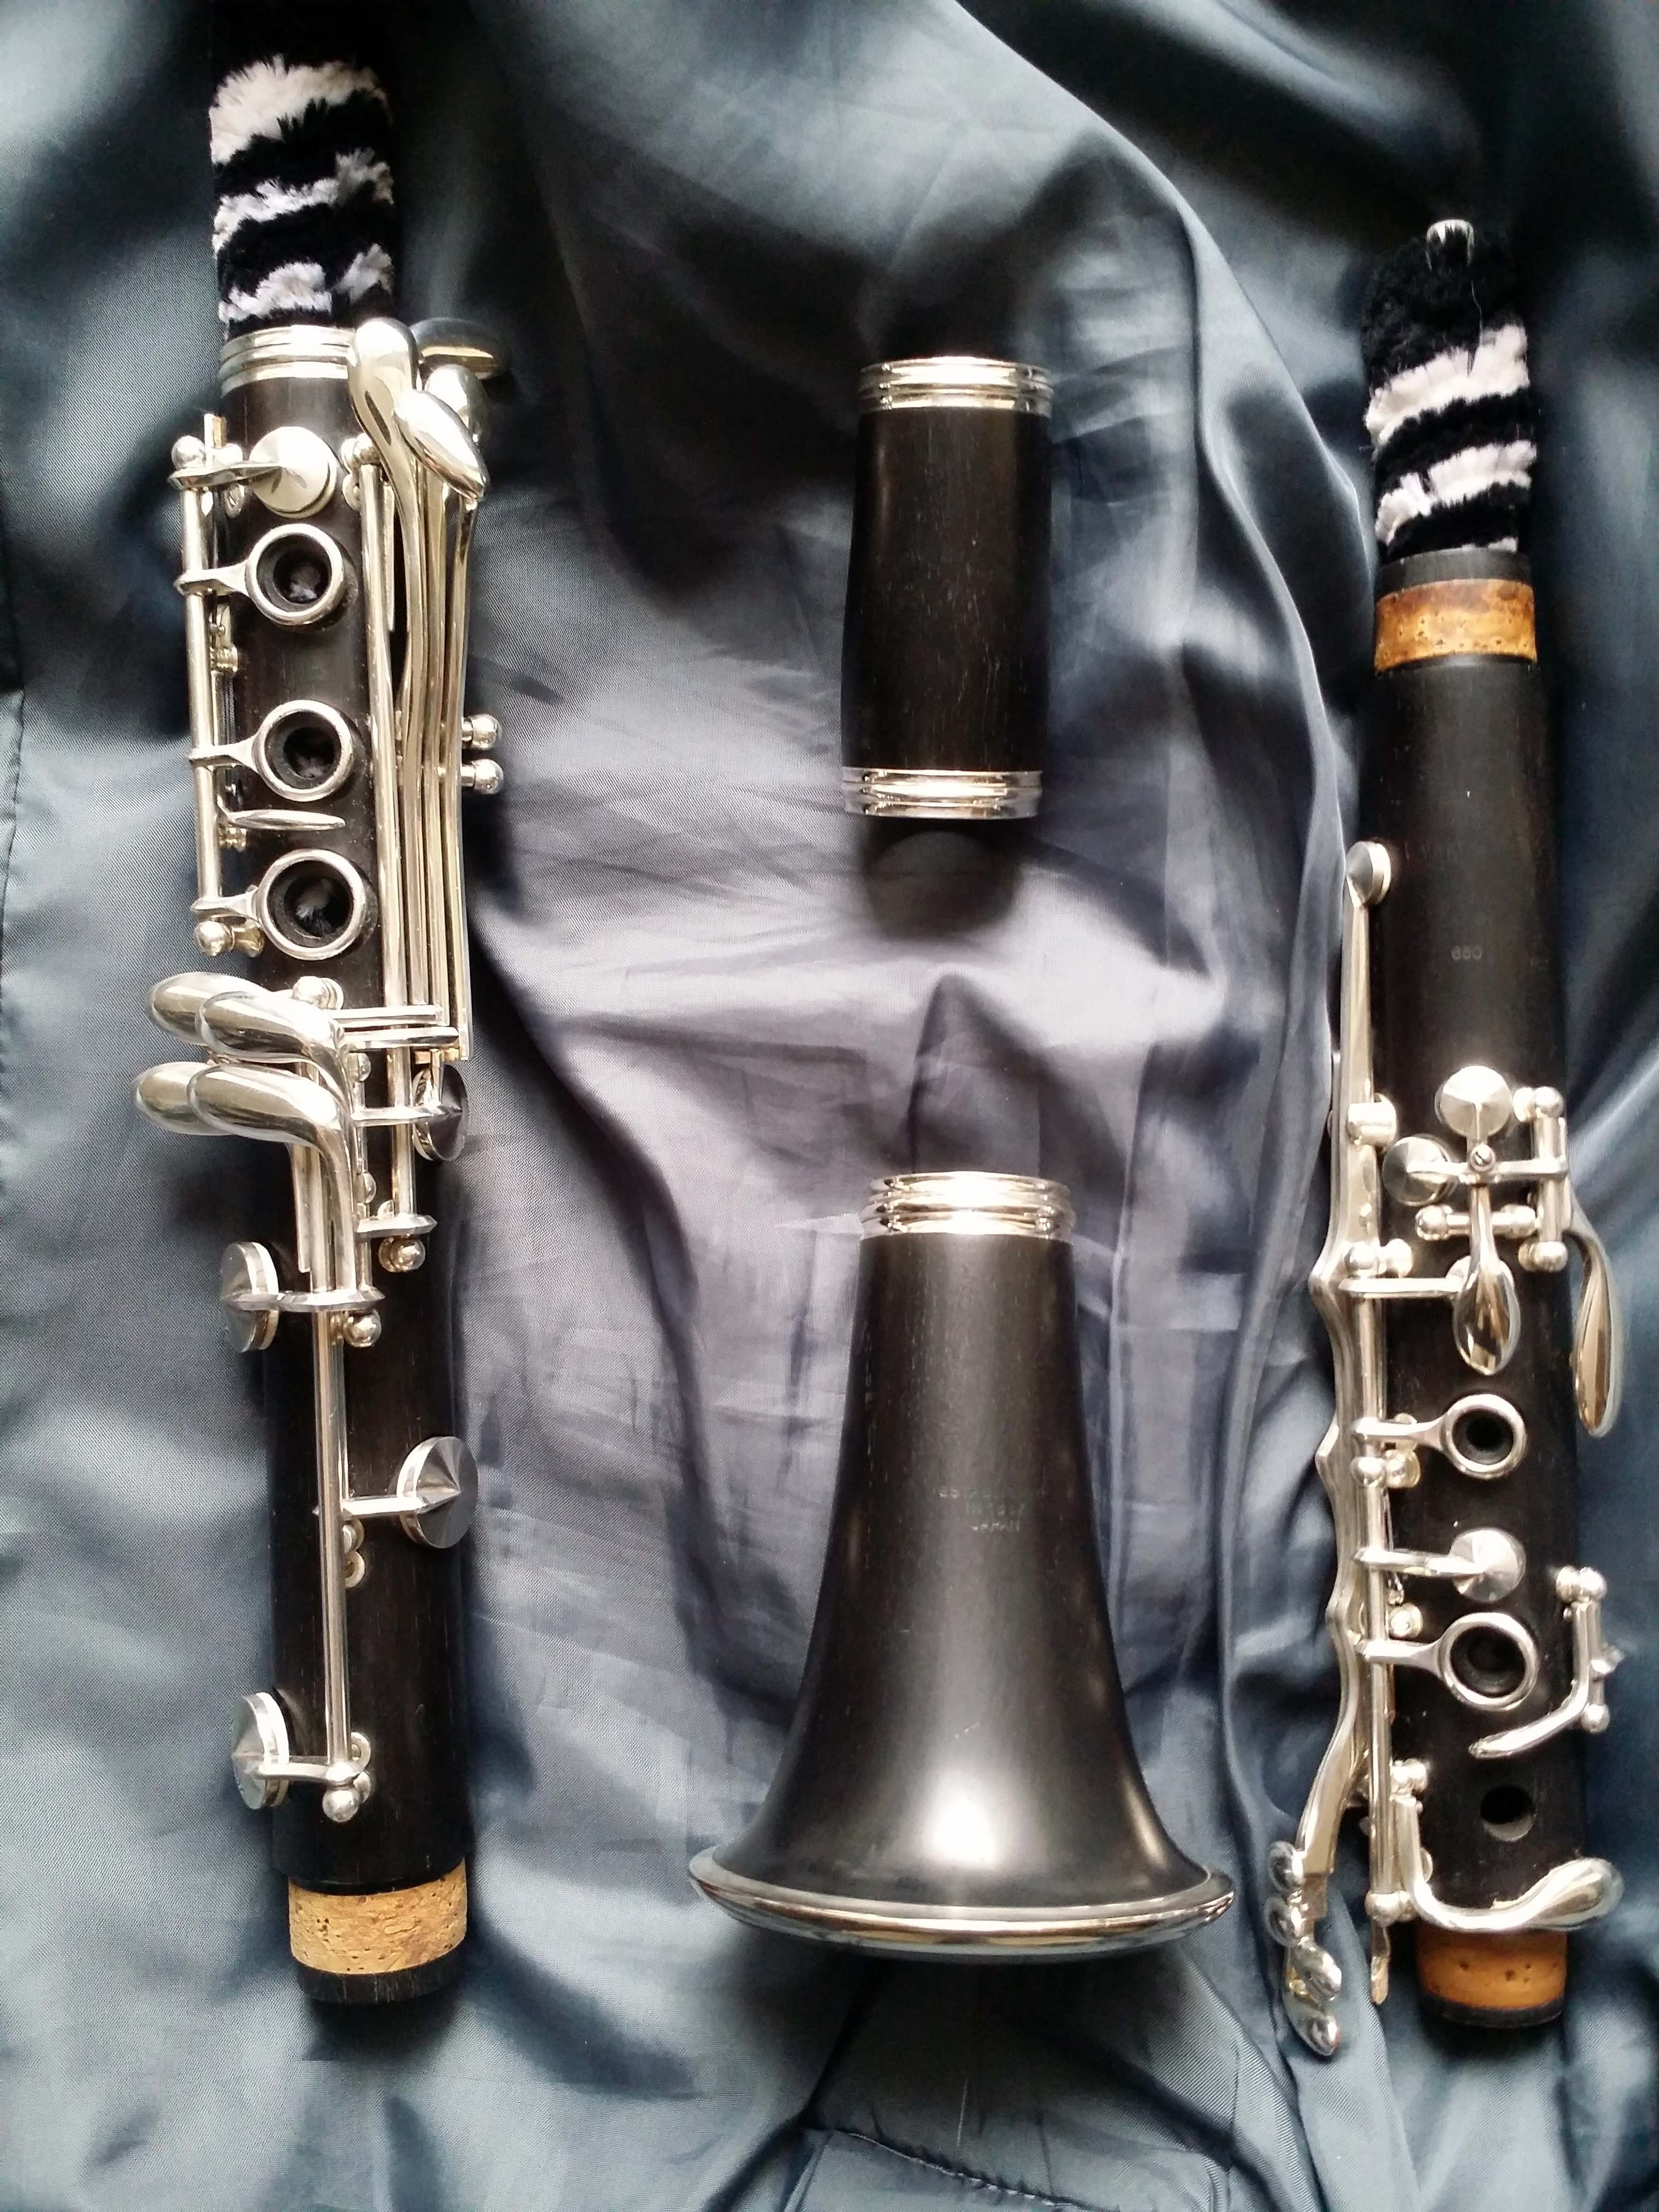 Bb clarinet Yamaha YCL 650E 18 keys, left Es key